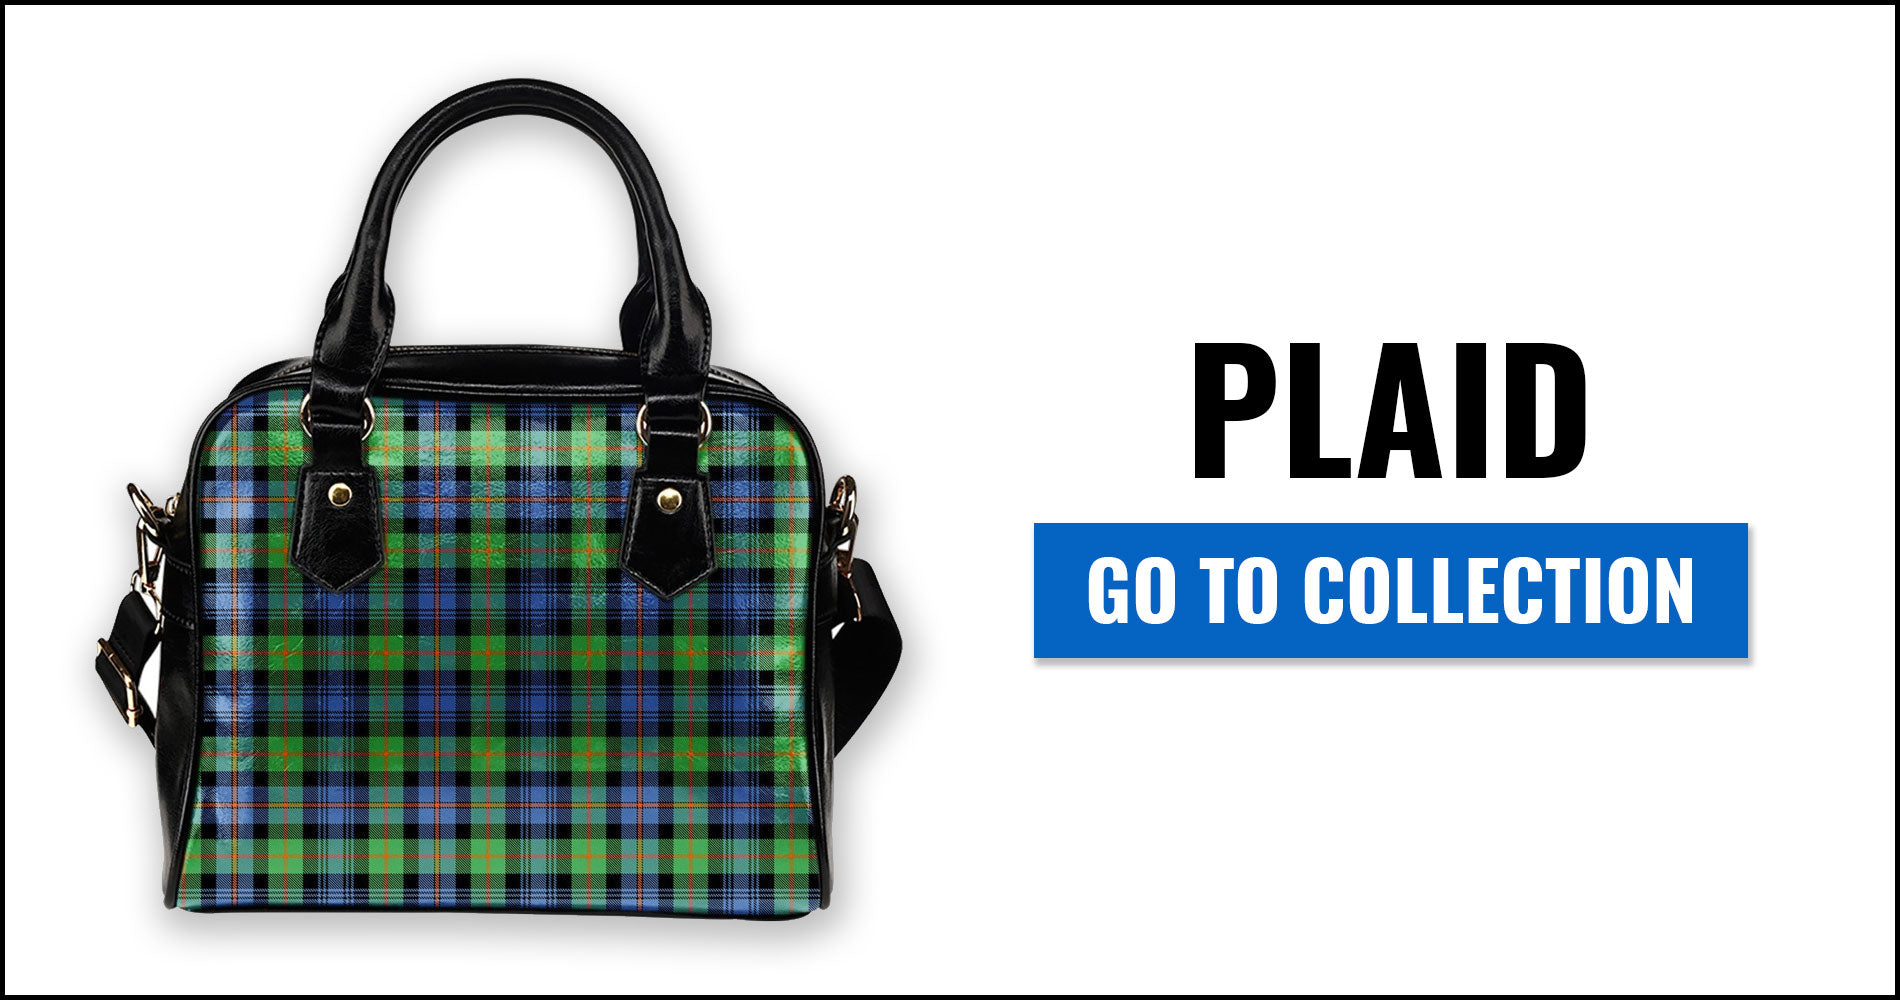 Plaid Tartan Shoulder Handbags